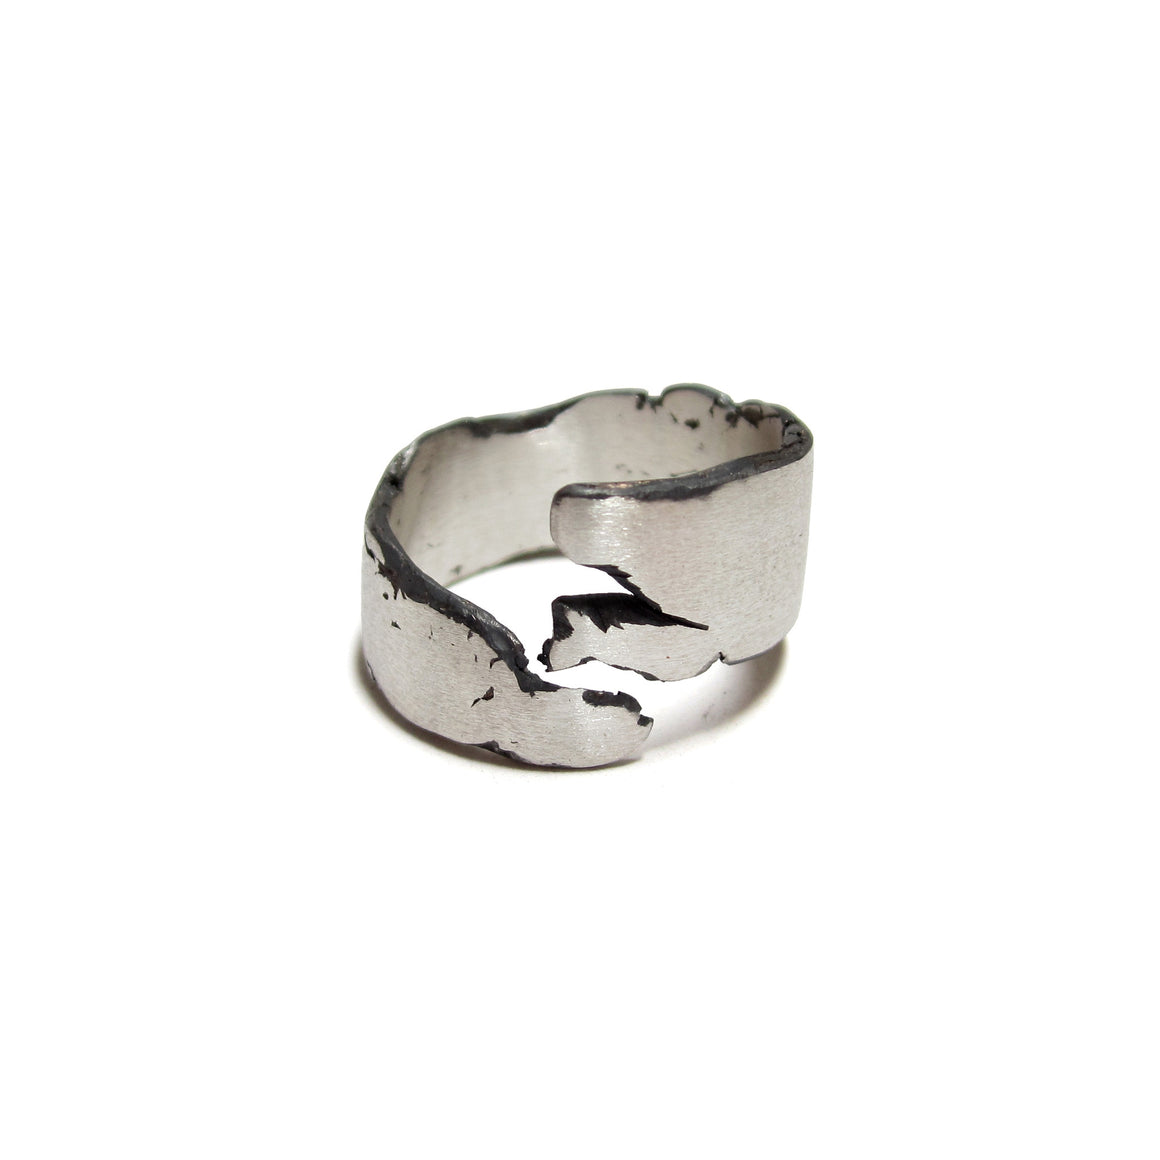 sterling silver cracked ring by Seth Papac